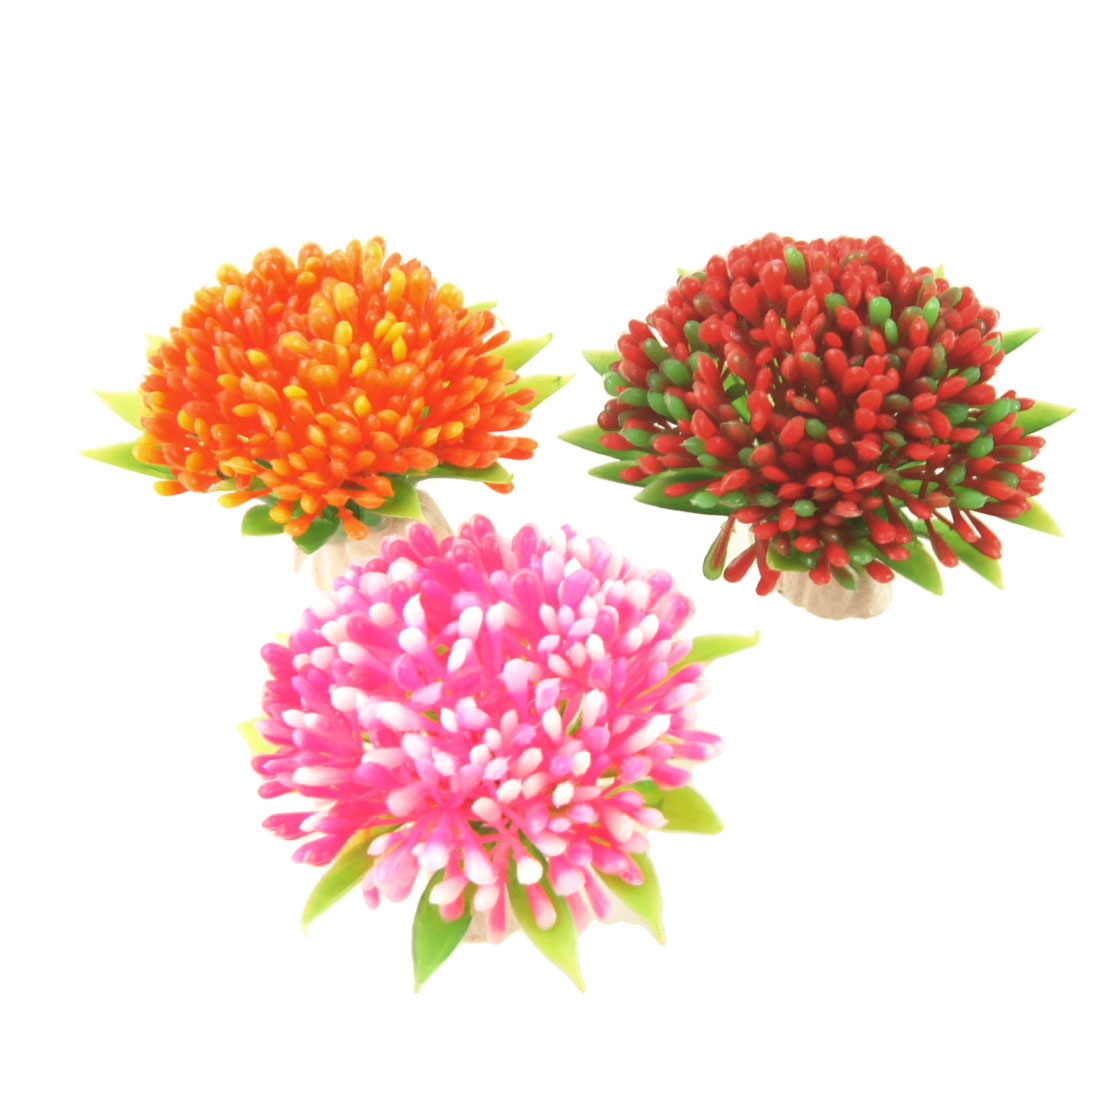 Fish Tank Artificial Red Pink Orange Flower Plants Ornaments 3 Pcs